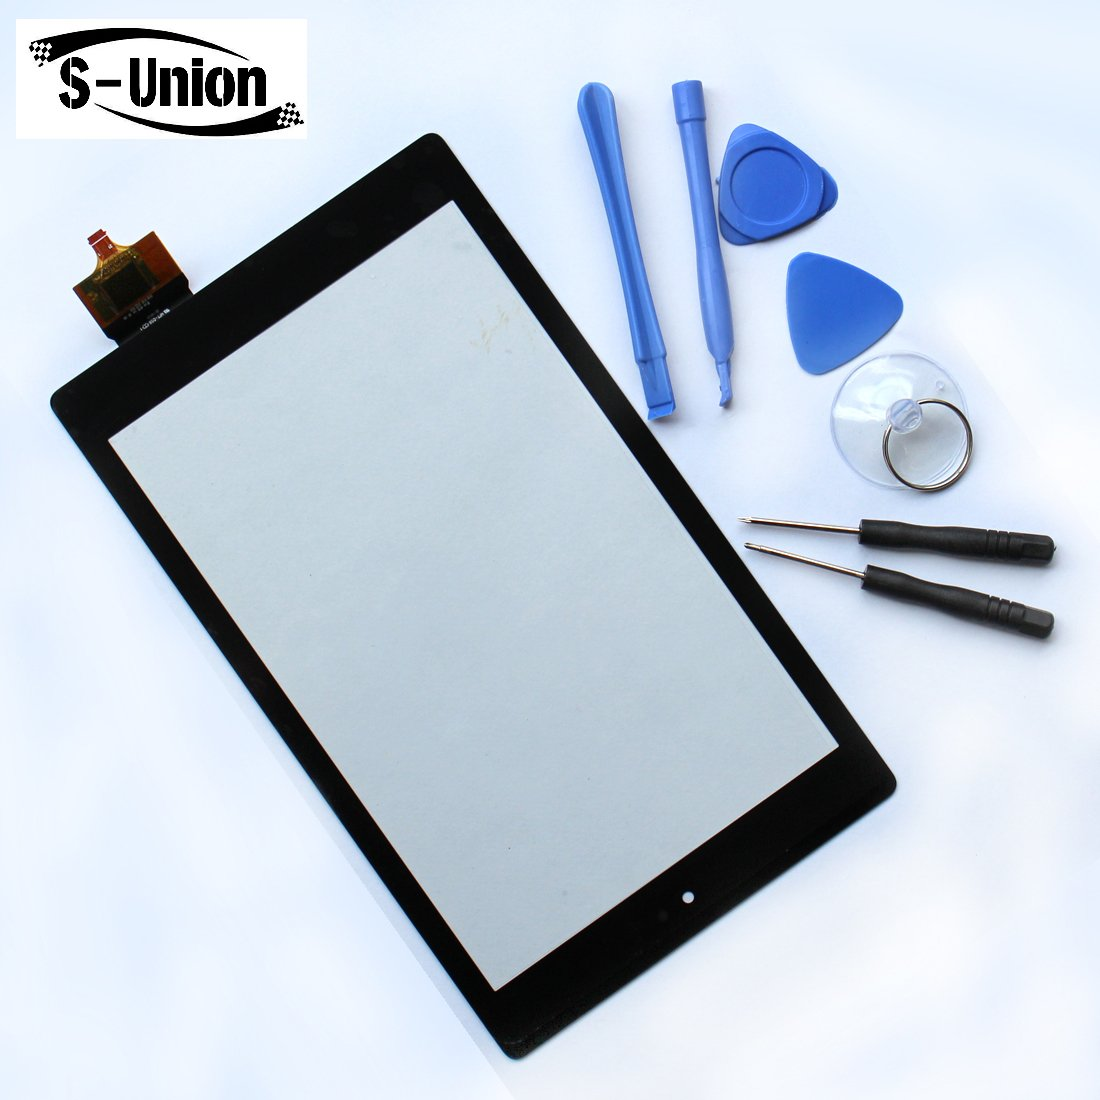 S-Union Touch Panel Digitizer Glass Lens Screen Replacement for Amazon Kindle Fire HD8 6th PR53DC